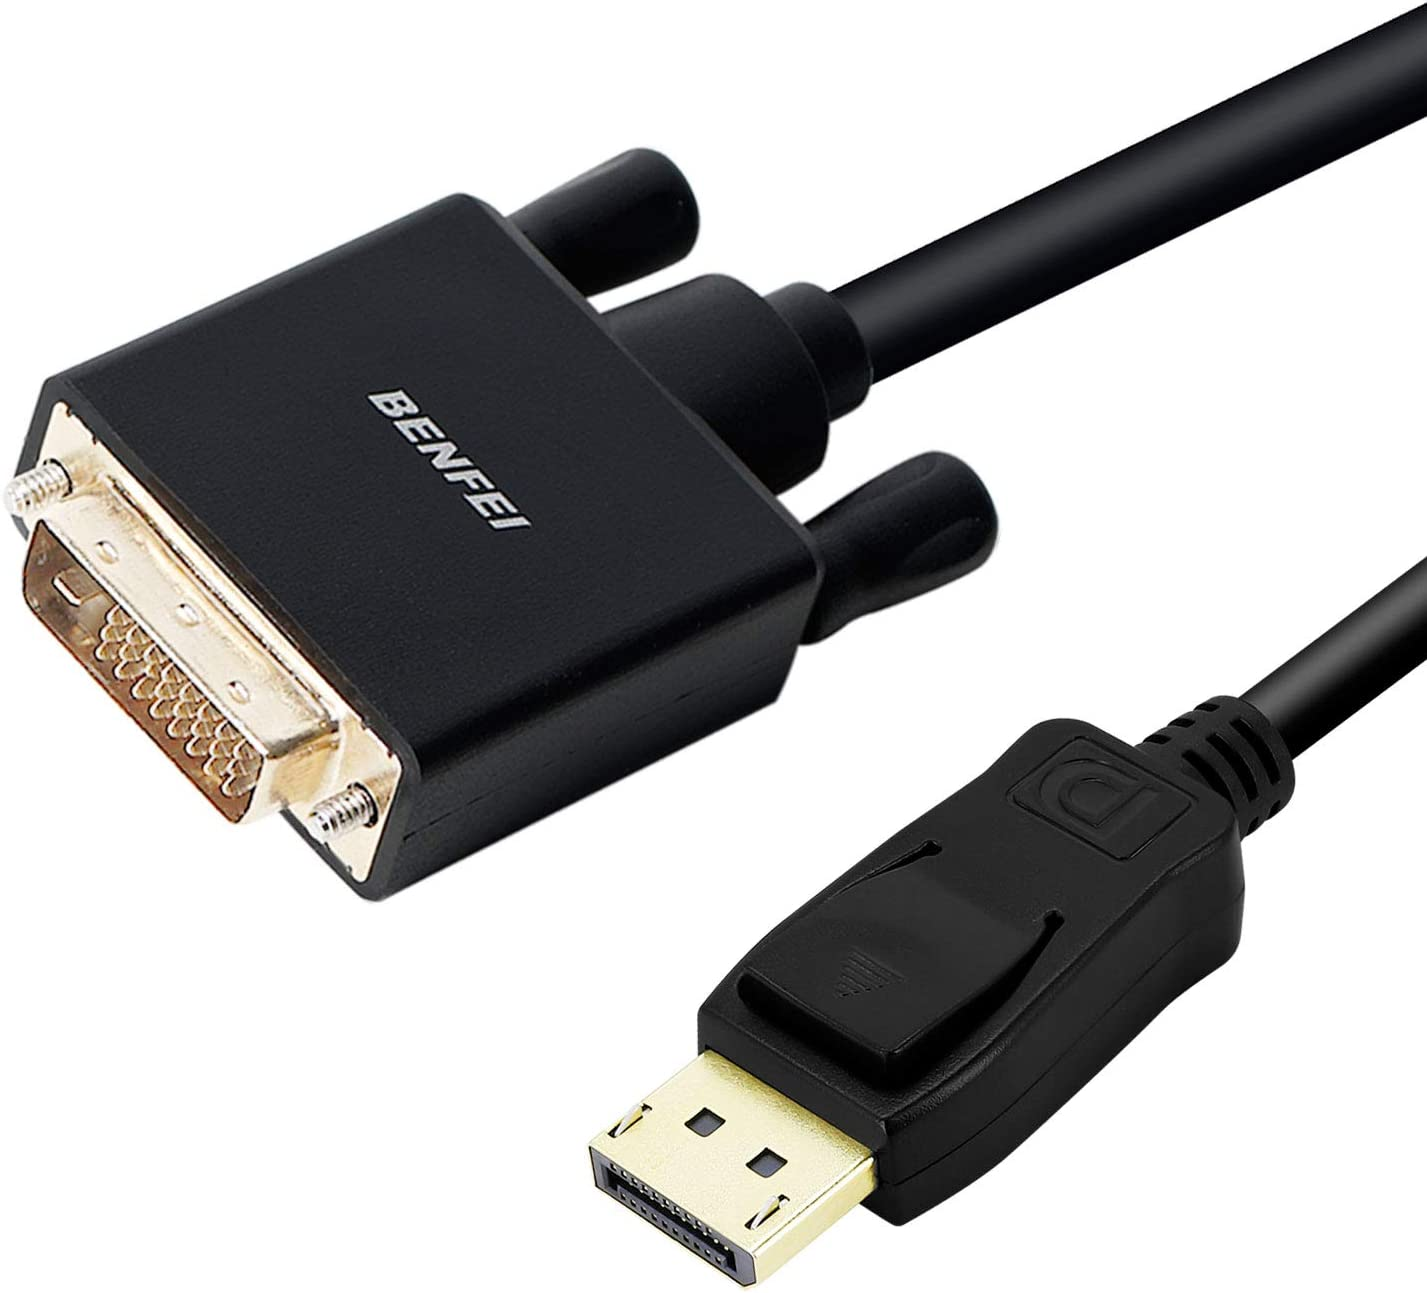 DisplayPort to DVI Adapter, Dp Display Port to DVI Converter Male to Male Gold-Plated Cord 3 Feet Black Cable for Lenovo, Dell, HP and Other Brand